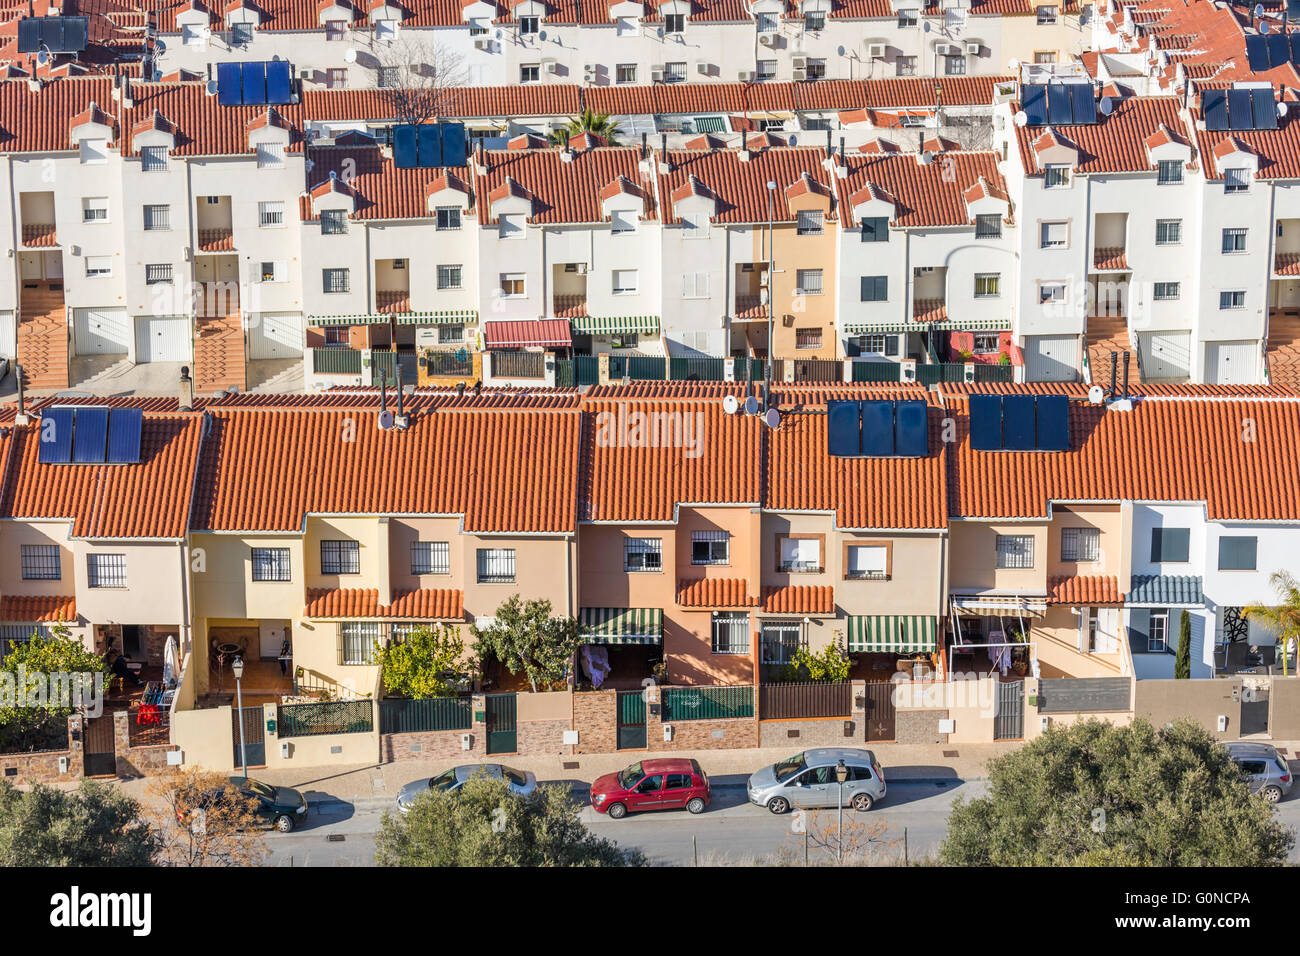 Antequera, Malaga Province, Andalusia, southern Spain.  Terraced houses (casas adosadas) on the outskirts of Antequera. - Stock Image